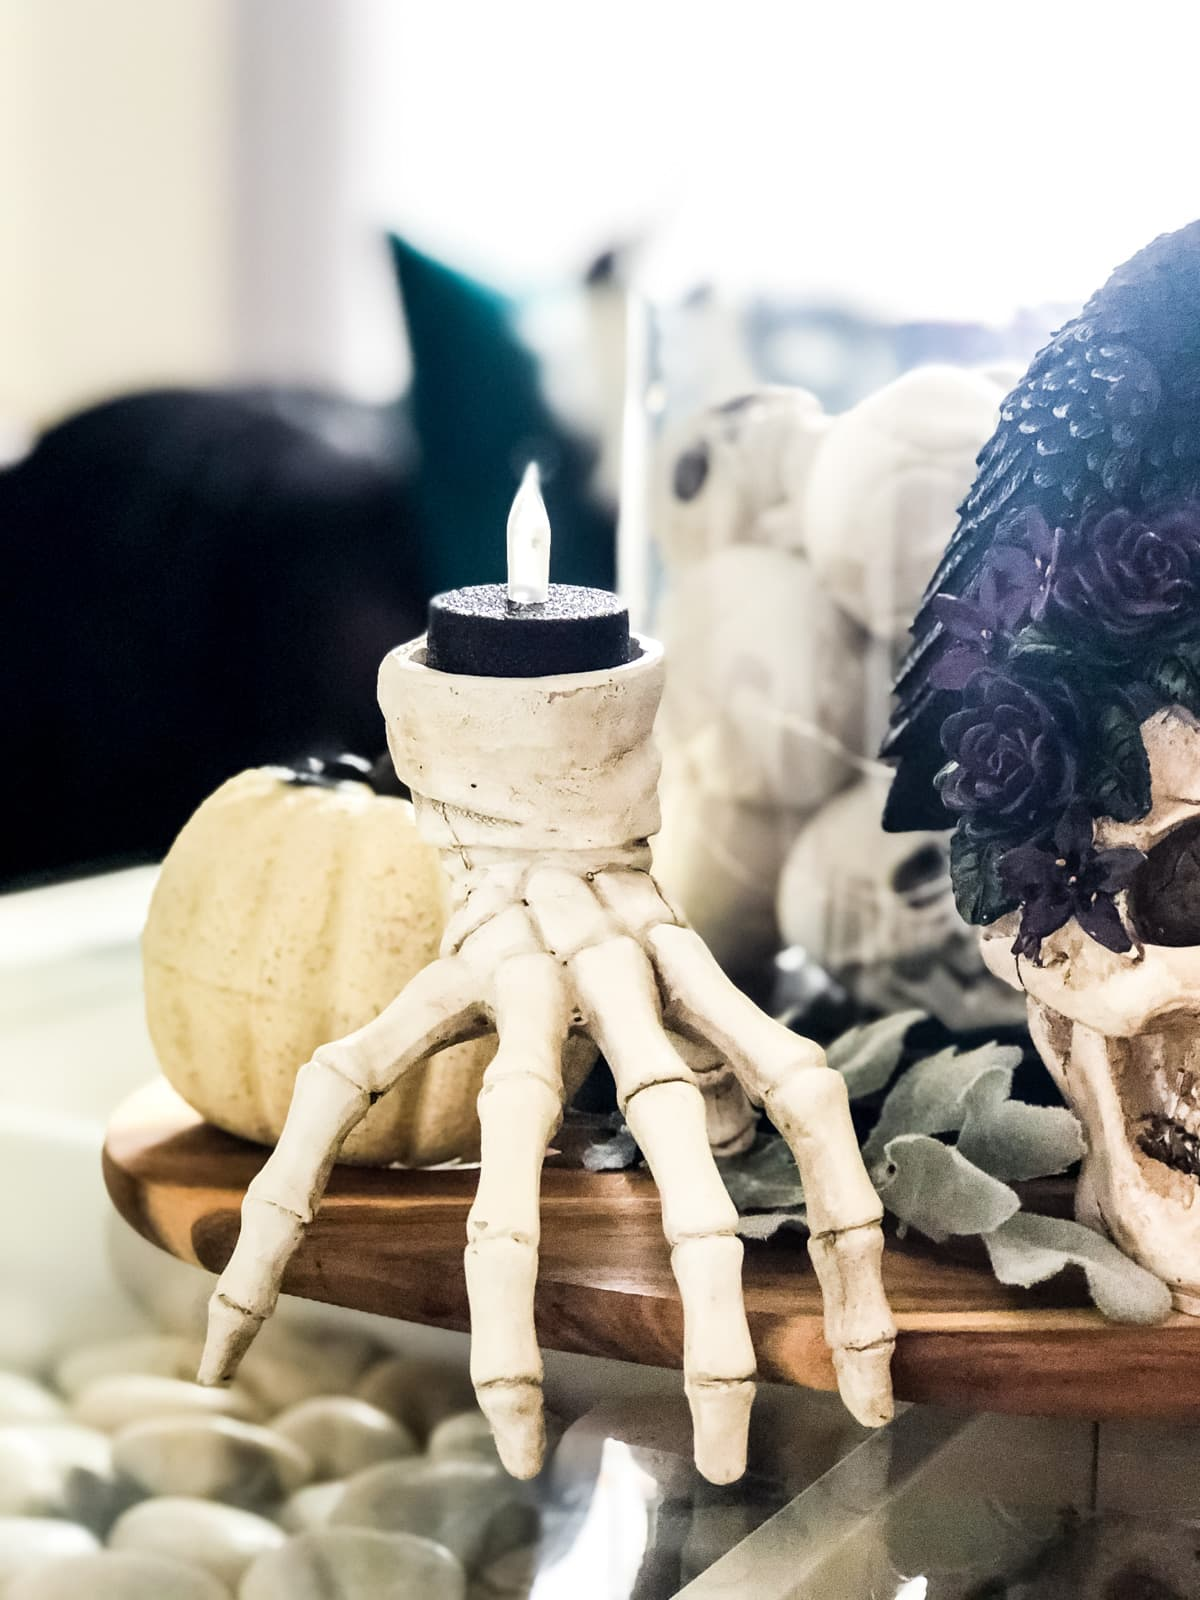 A skeleton hand candle holder